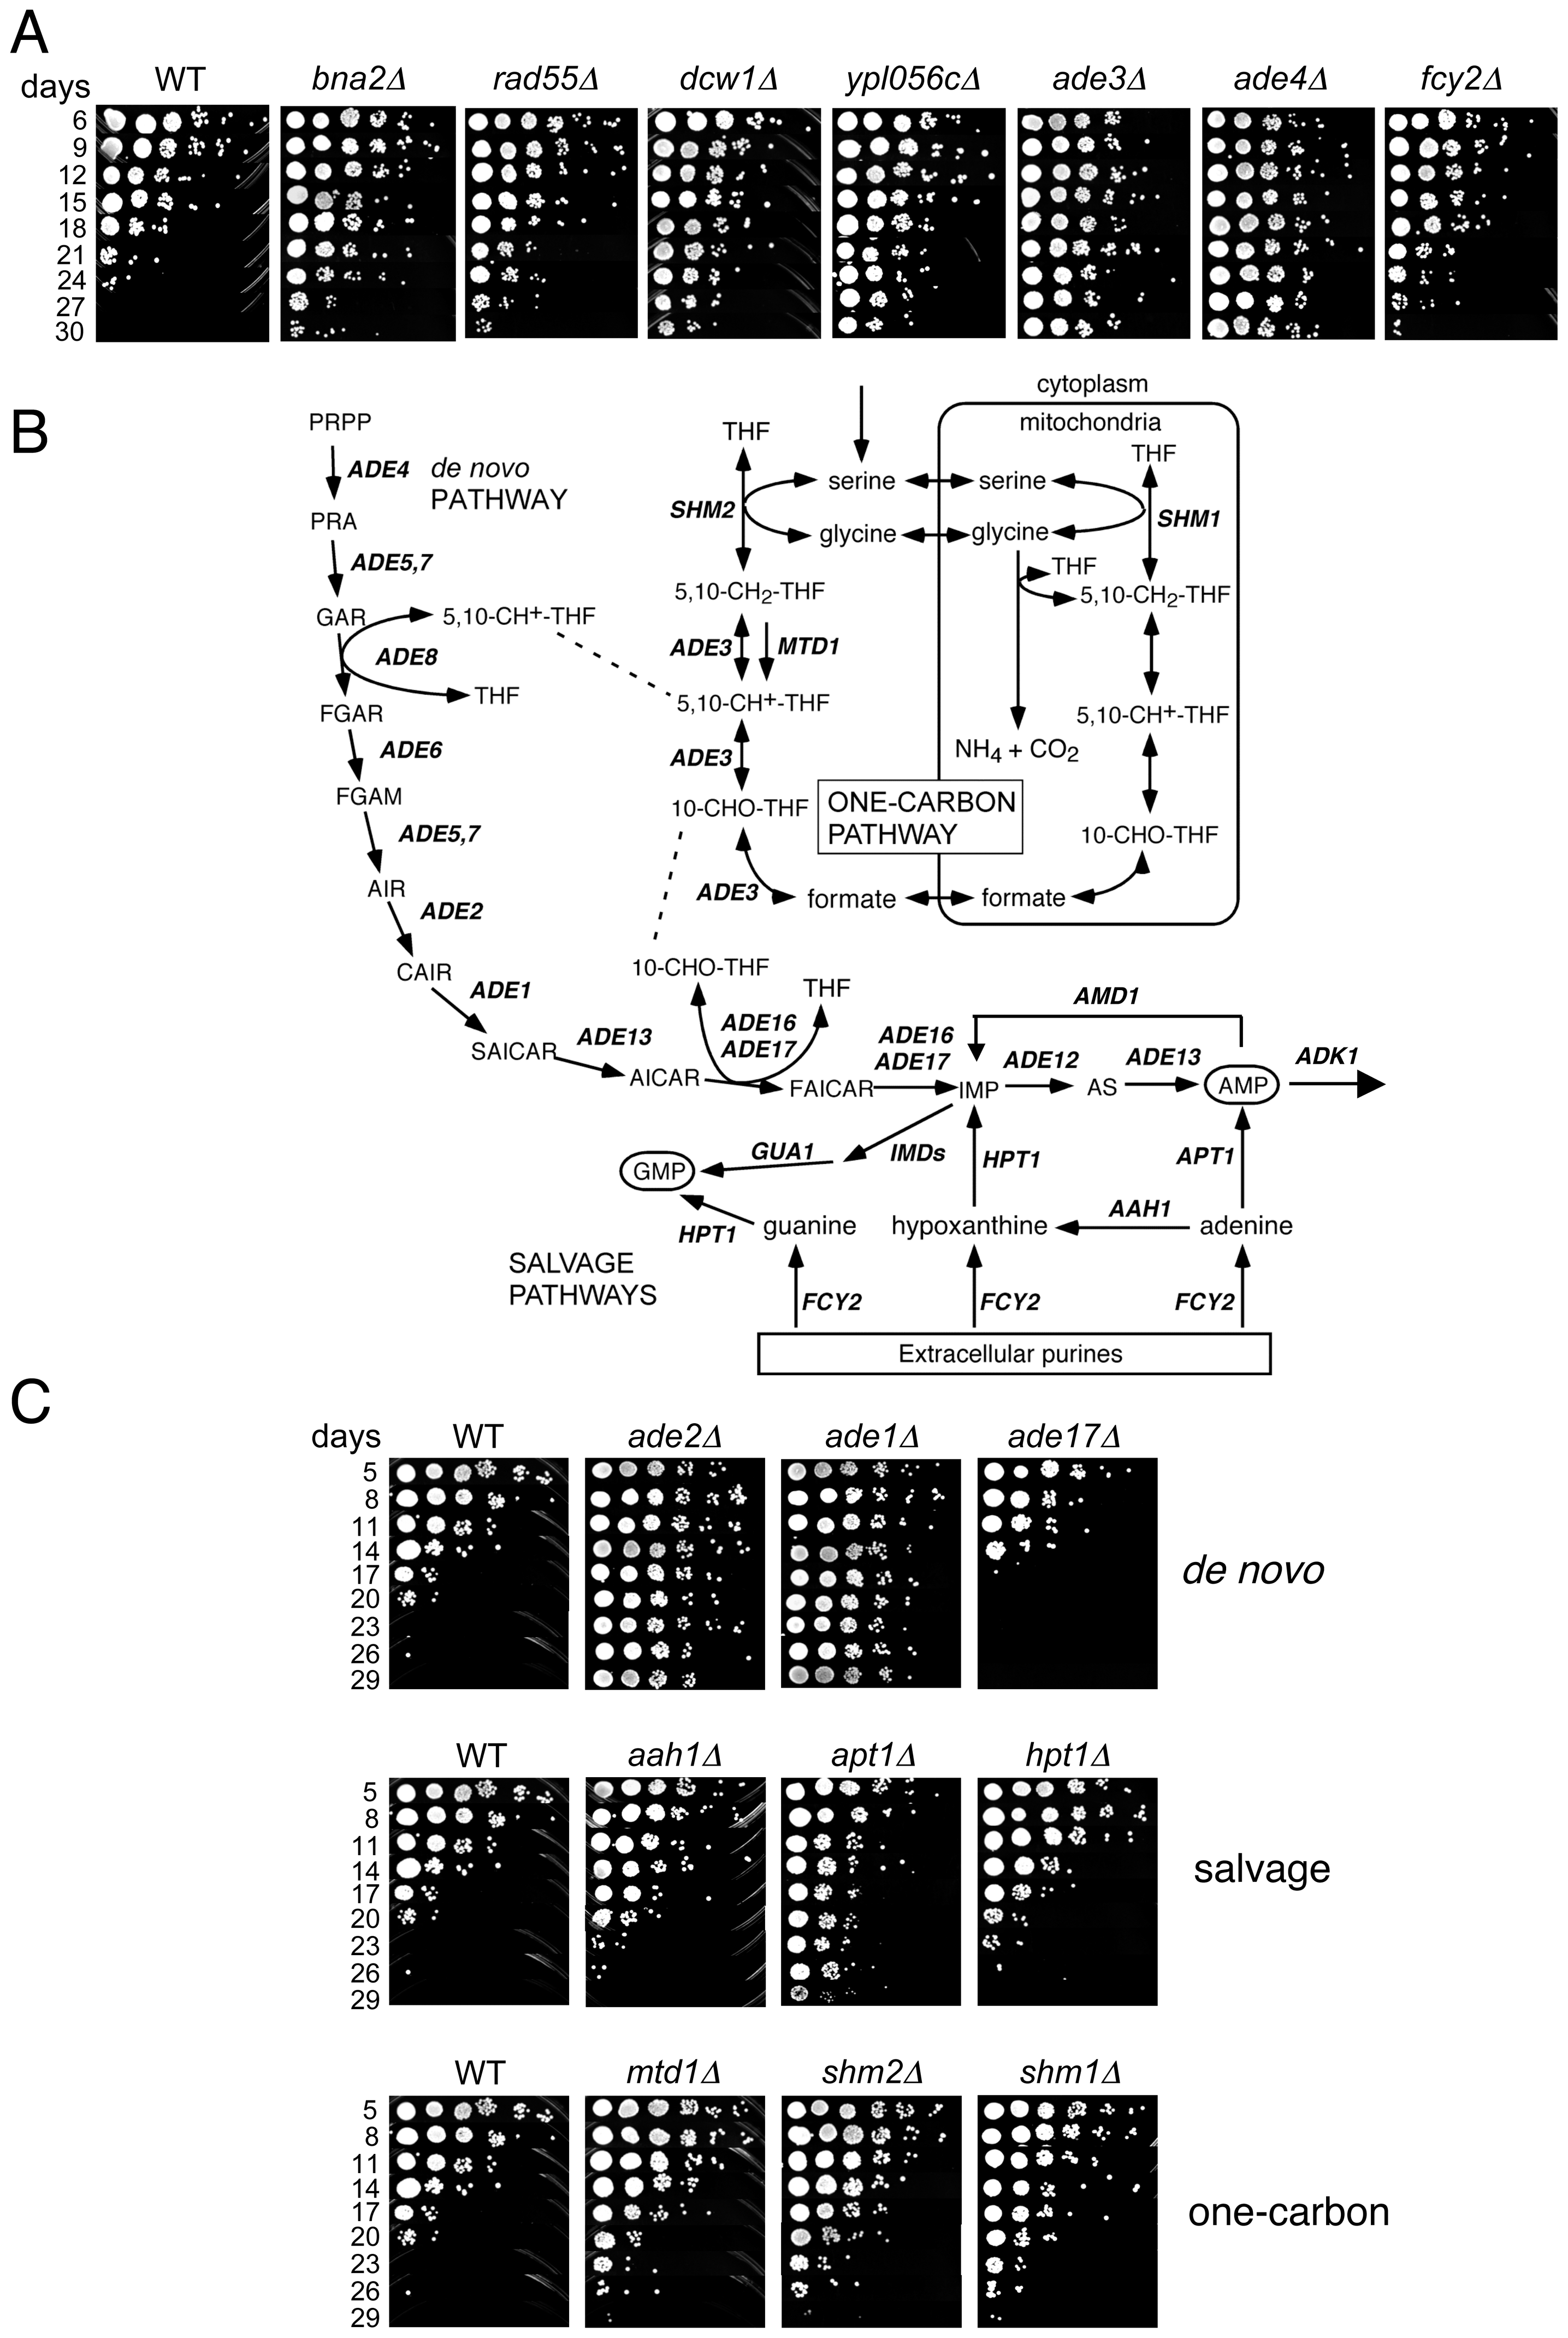 Lifespan-extending mutants include those that block <i>de novo</i> and salvage biosynthesis of purines.